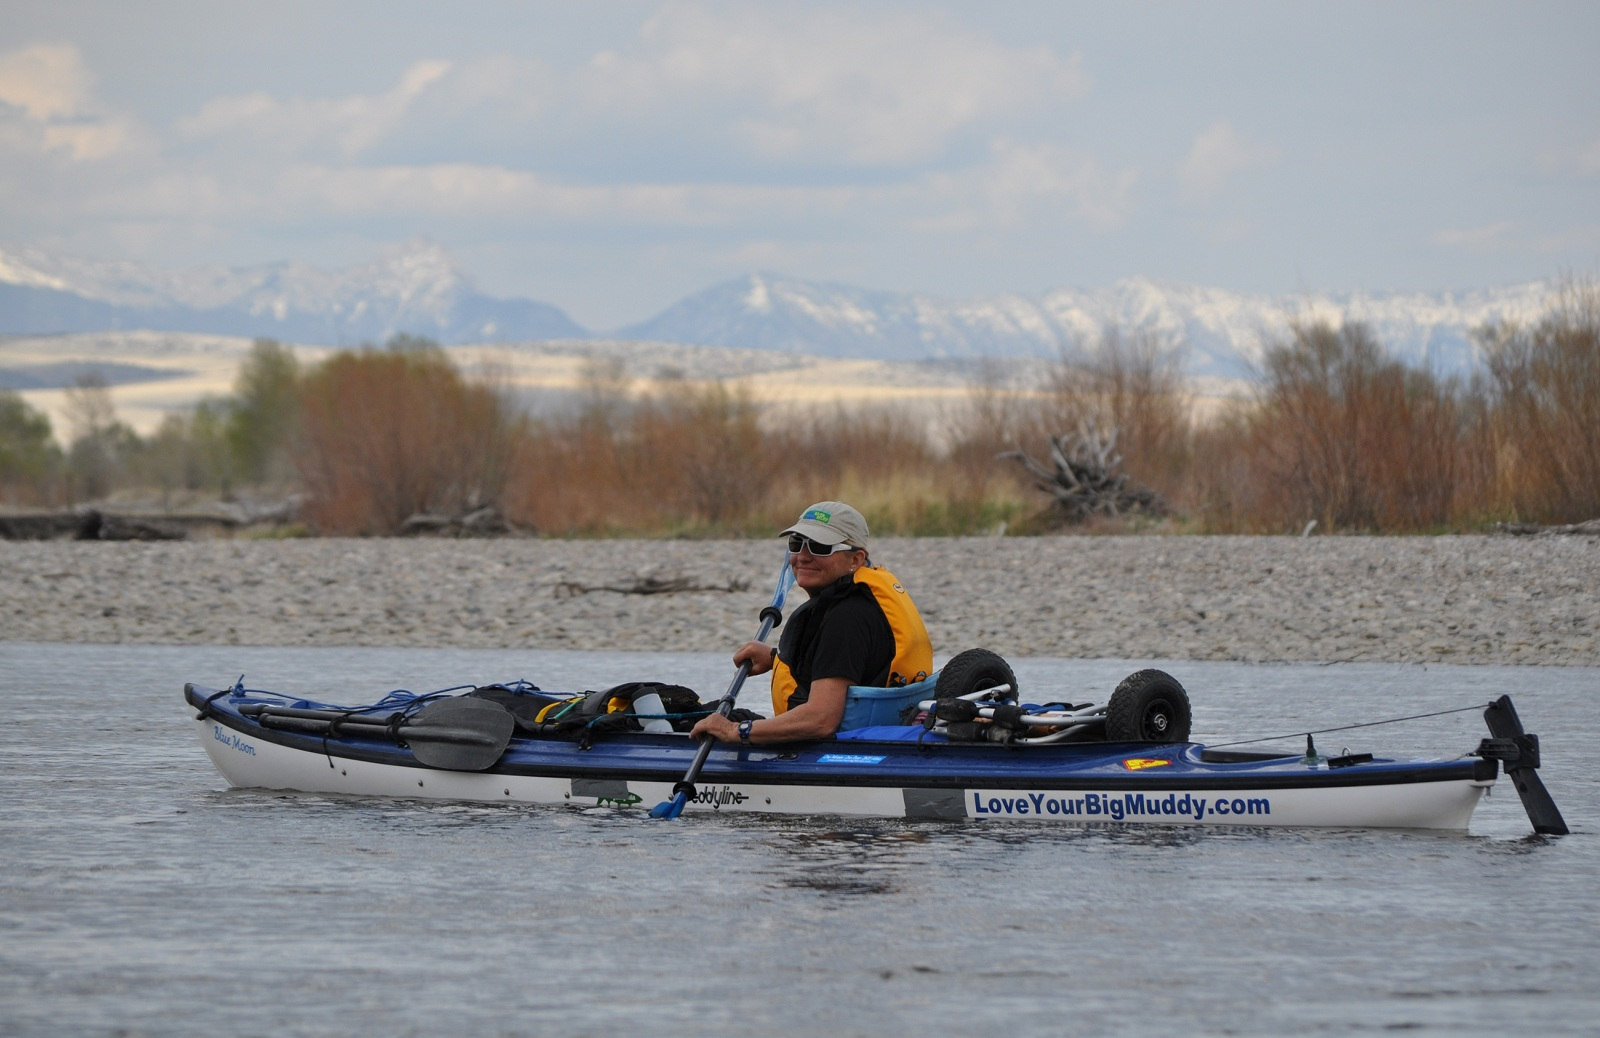 Janet on the Jefferson River in Montana. Photo by Norman Miller